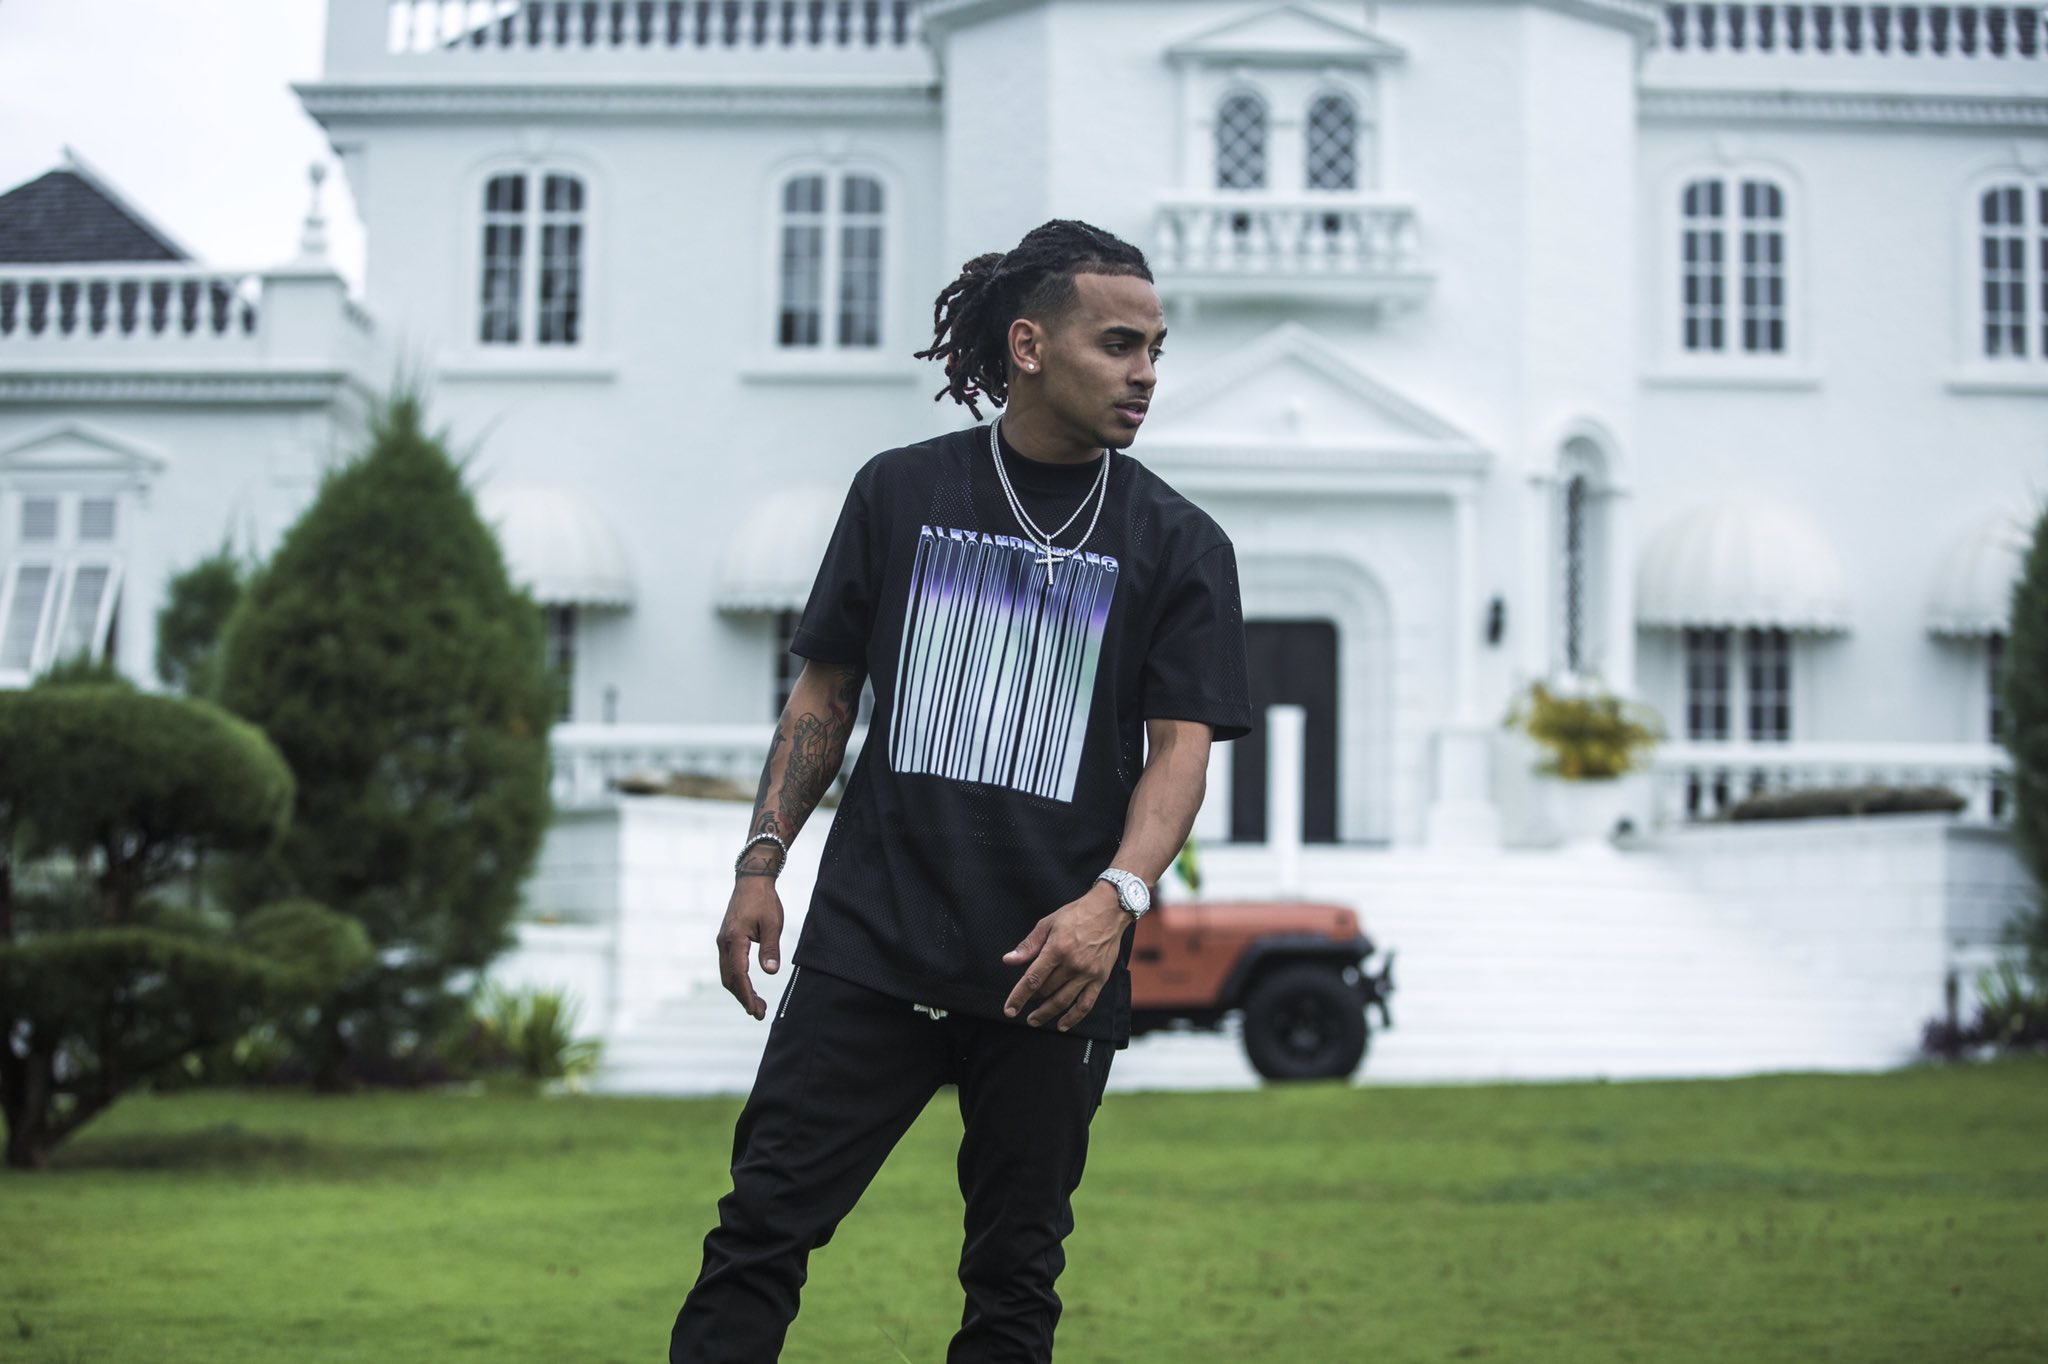 At just 25 years old, Ozuna has come closer than anyone else to breaking records that were previously placed by artists Jean Sebastian and Juan Gabriel, now deceased. (Courtesy/Twitter)